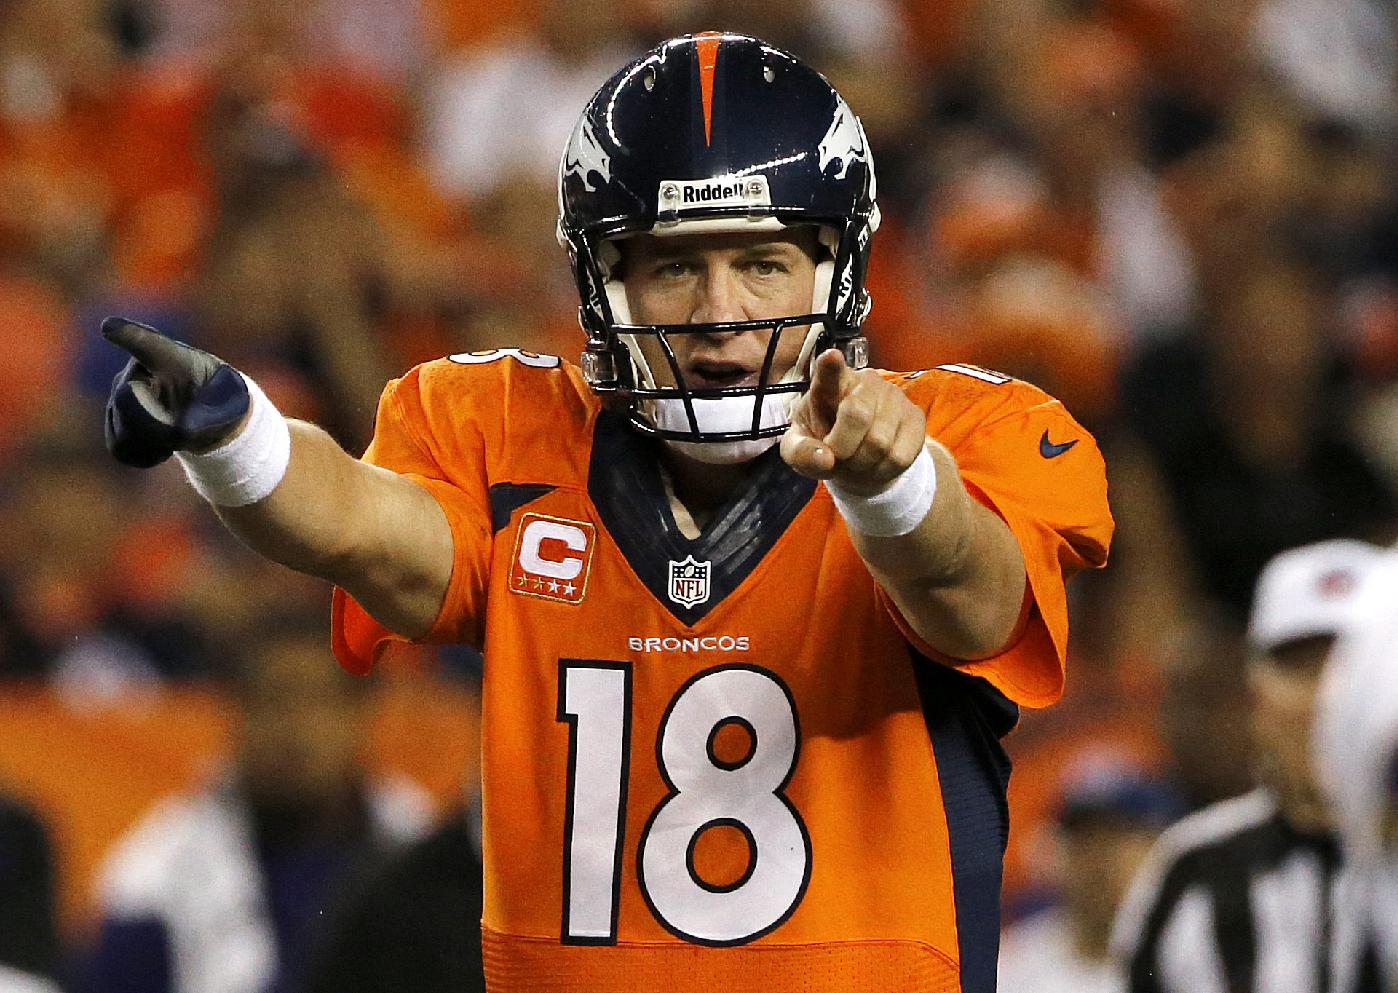 In this Sept. 5, 2013, file photo, Denver Broncos quarterback Peyton Manning (18) calls a play at the line of scrimmage during the first half of an NFL football game against the Baltimore Ravens in Denver. Manning is Sports Illustrated's Sportsman of the Year.  He is the fourth NFL quarterback to take the honor in the last nine years, following Brady in 2005, Brett Favre in 2007 and Drew Brees in 2010. LeBron James was the winner last year